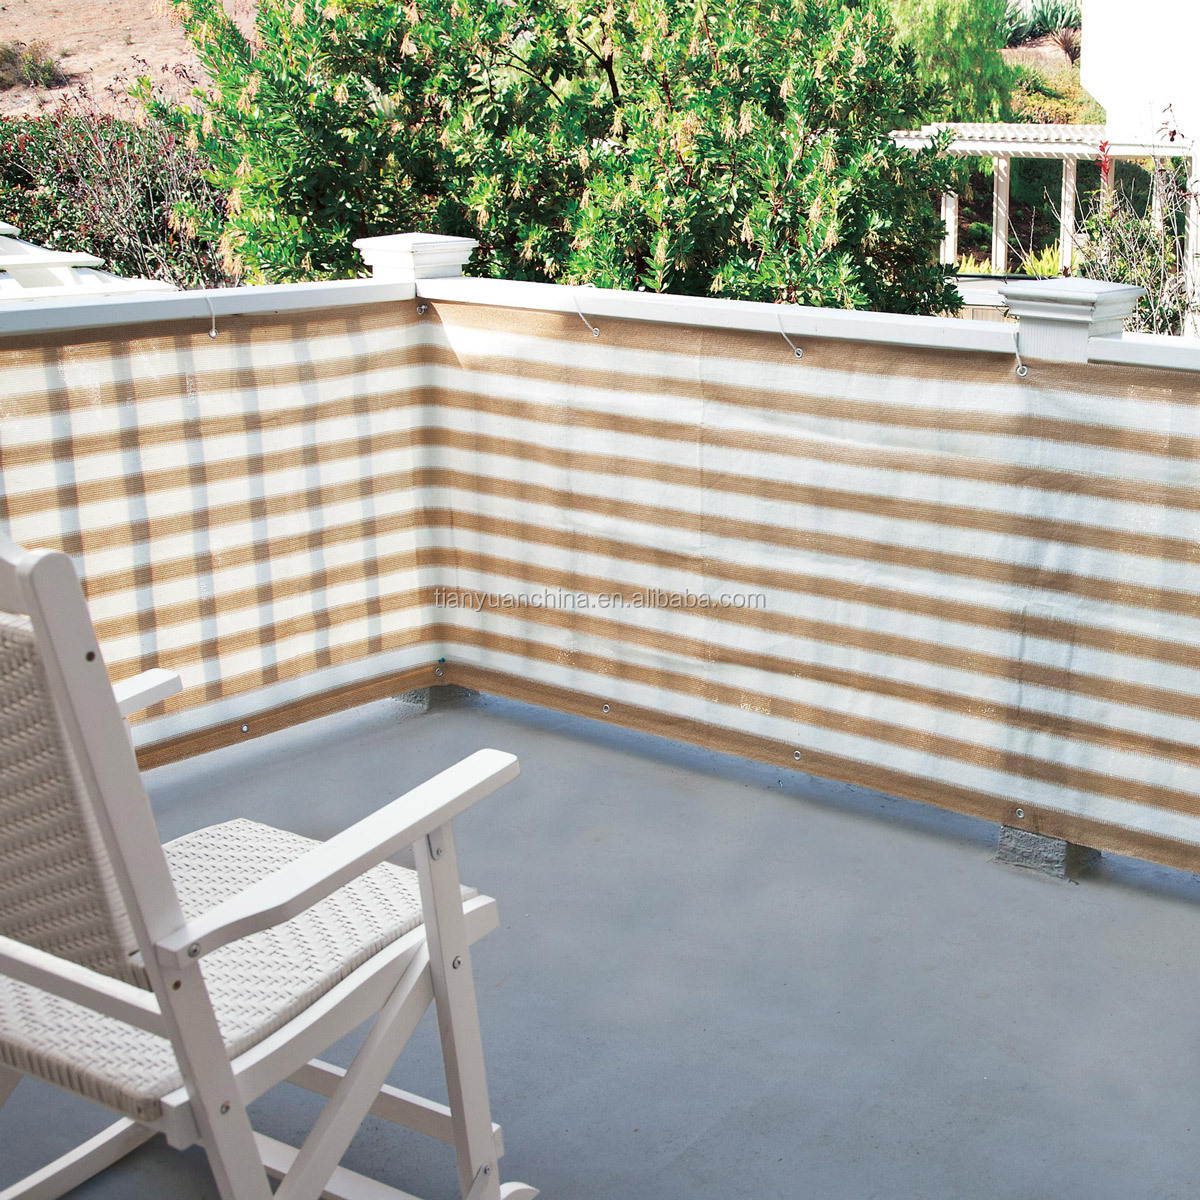 Striped Outdoor Privacy Screen Net Mesh For Deck, Balcony, Fence, Pool or Patio